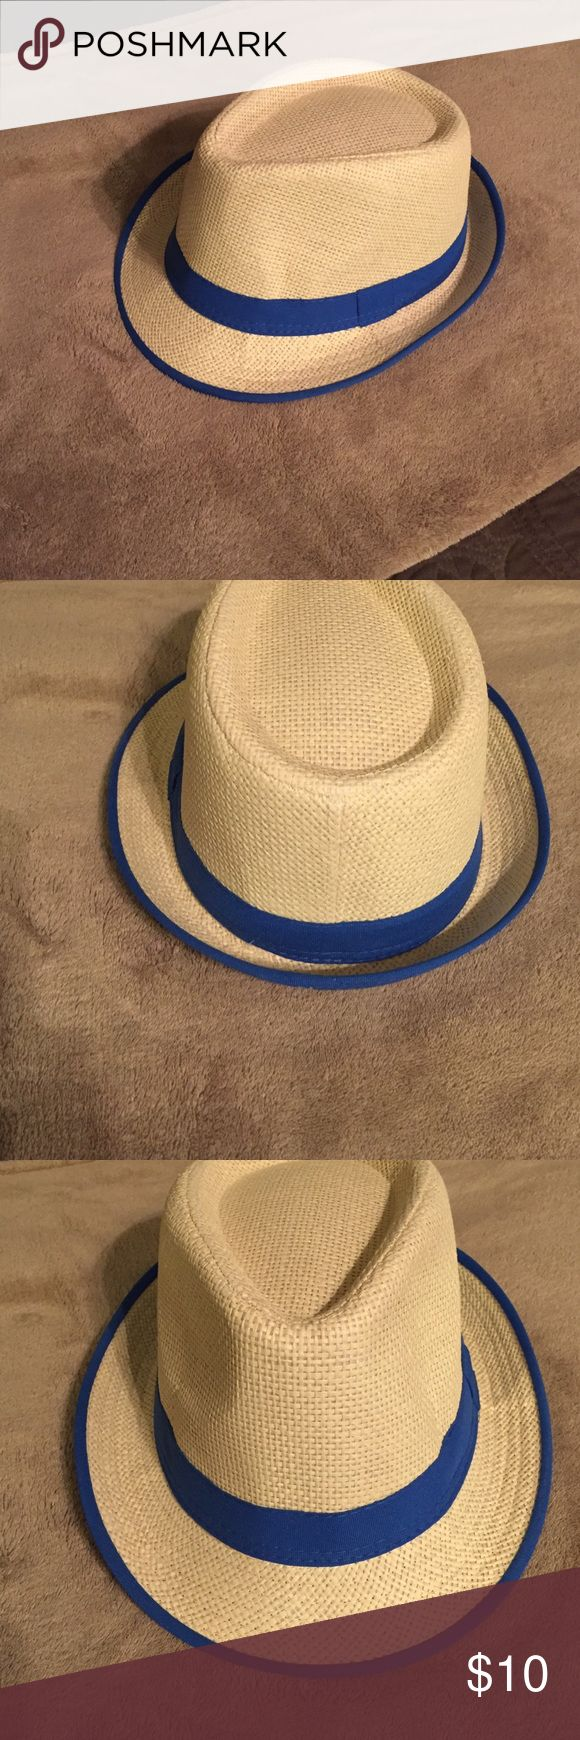 Fedora Tan fedora with Royal blue trim and band. Never been worn. Accessories Hats